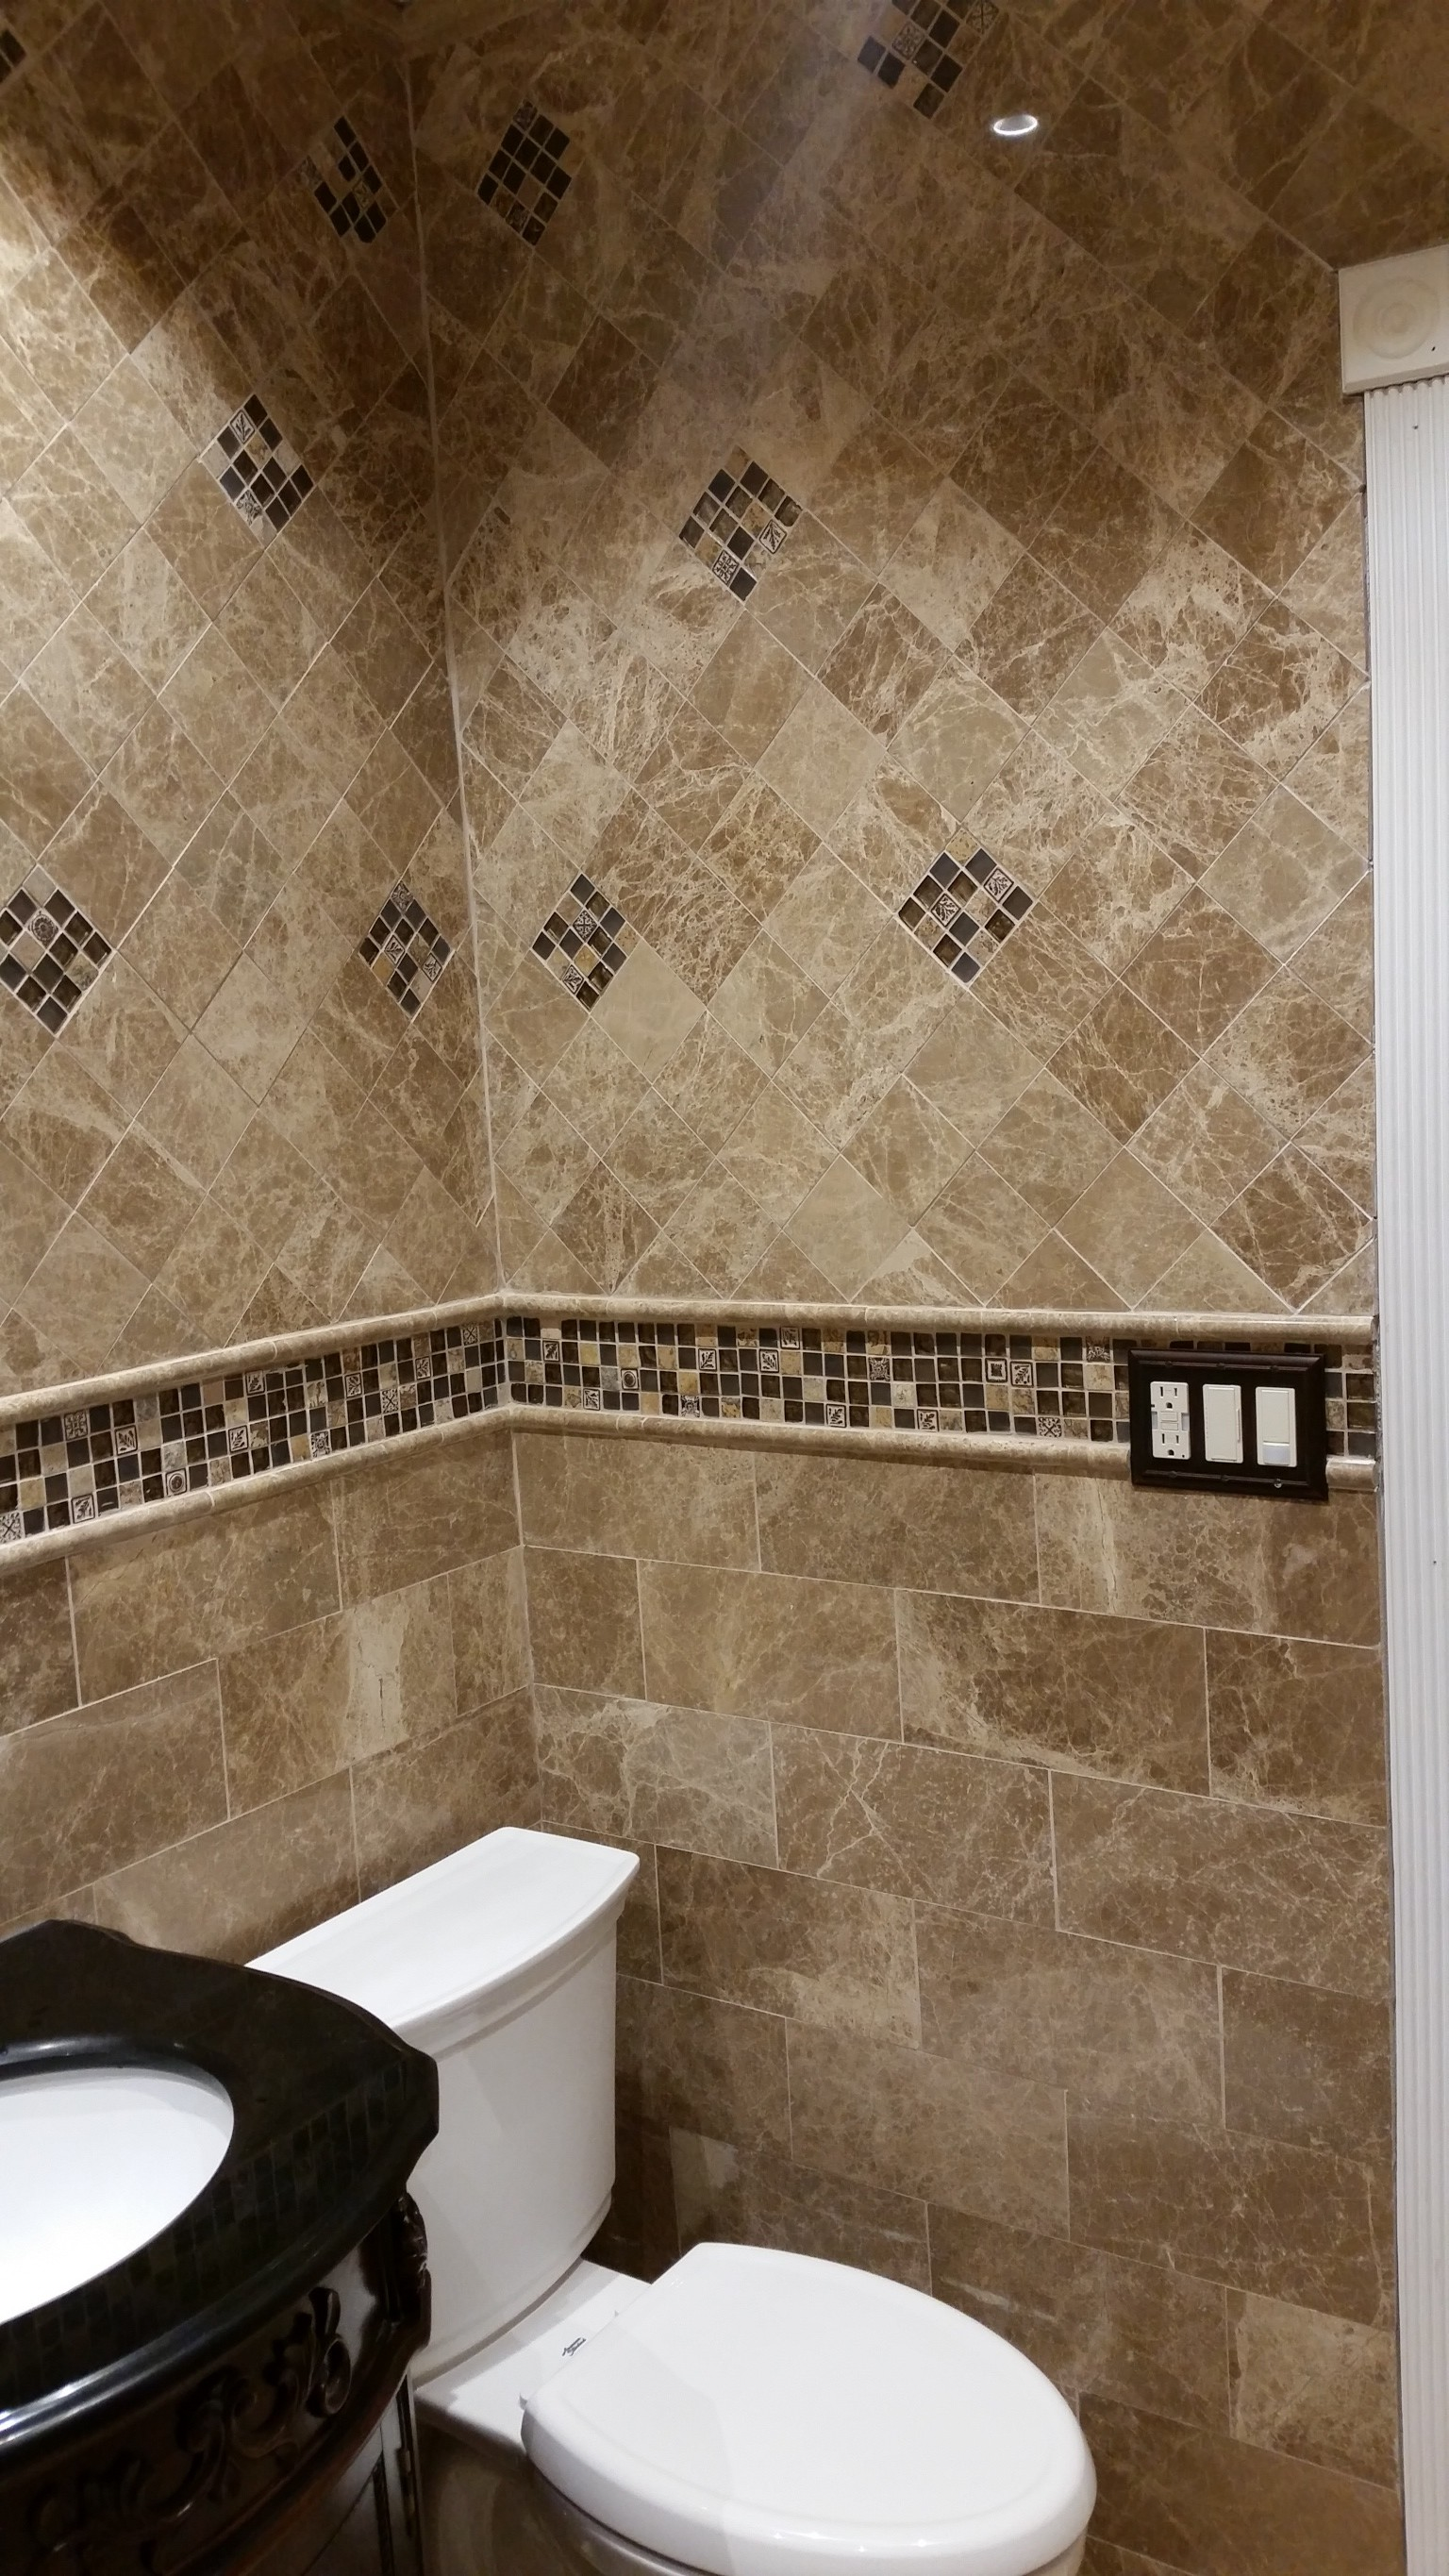 Cool Ceramic Tile Bathroom Shower Design Ideas  Home Art Tile In QueensNY